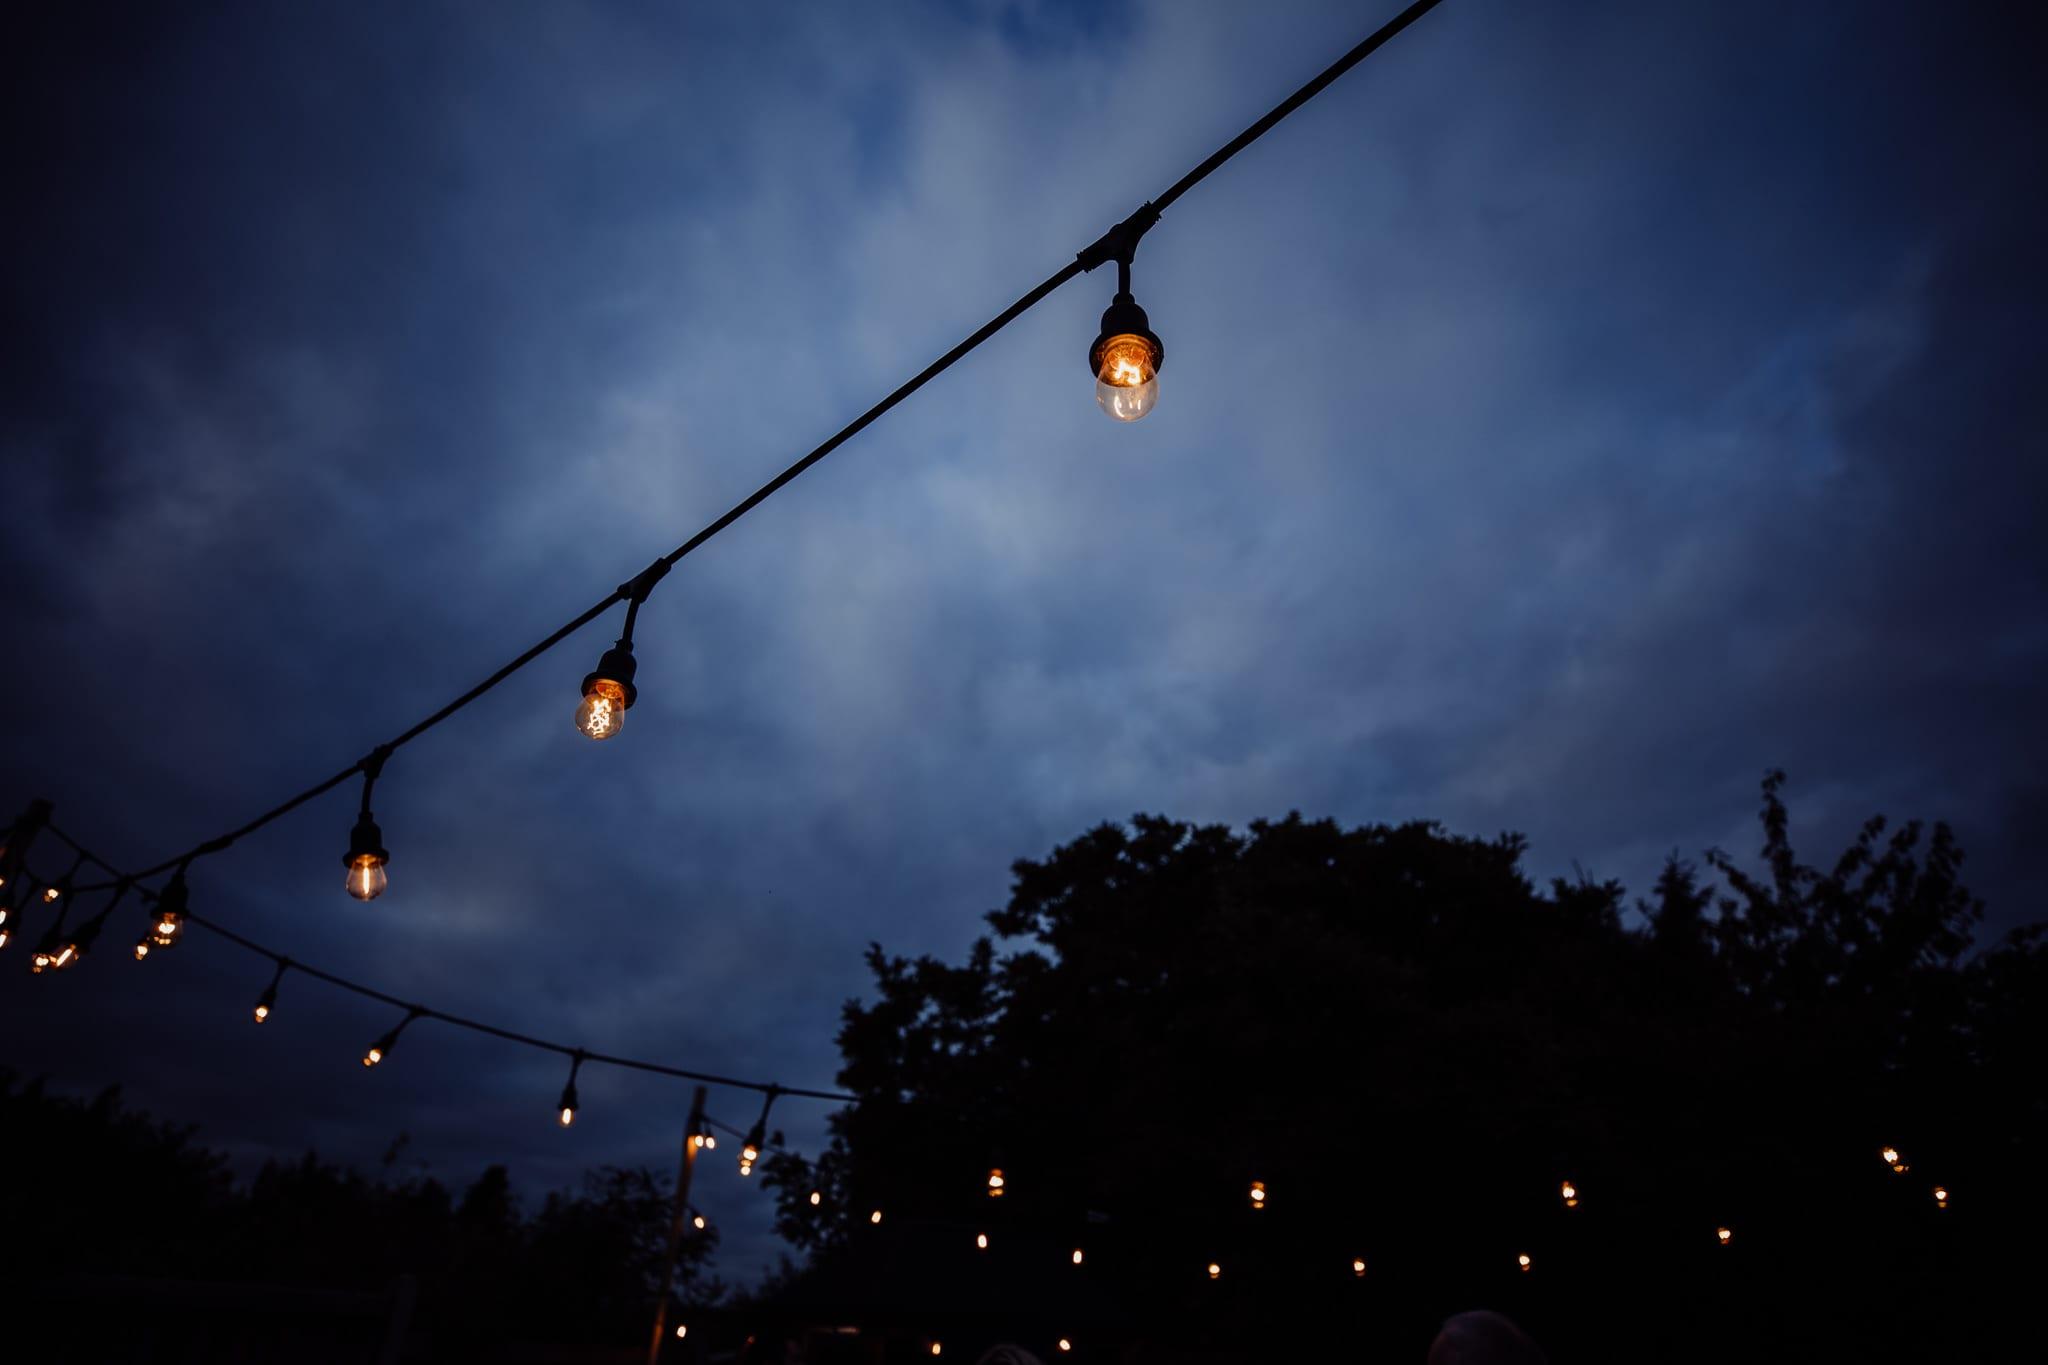 festoon lights against evening sky at an Essex back garden wedding